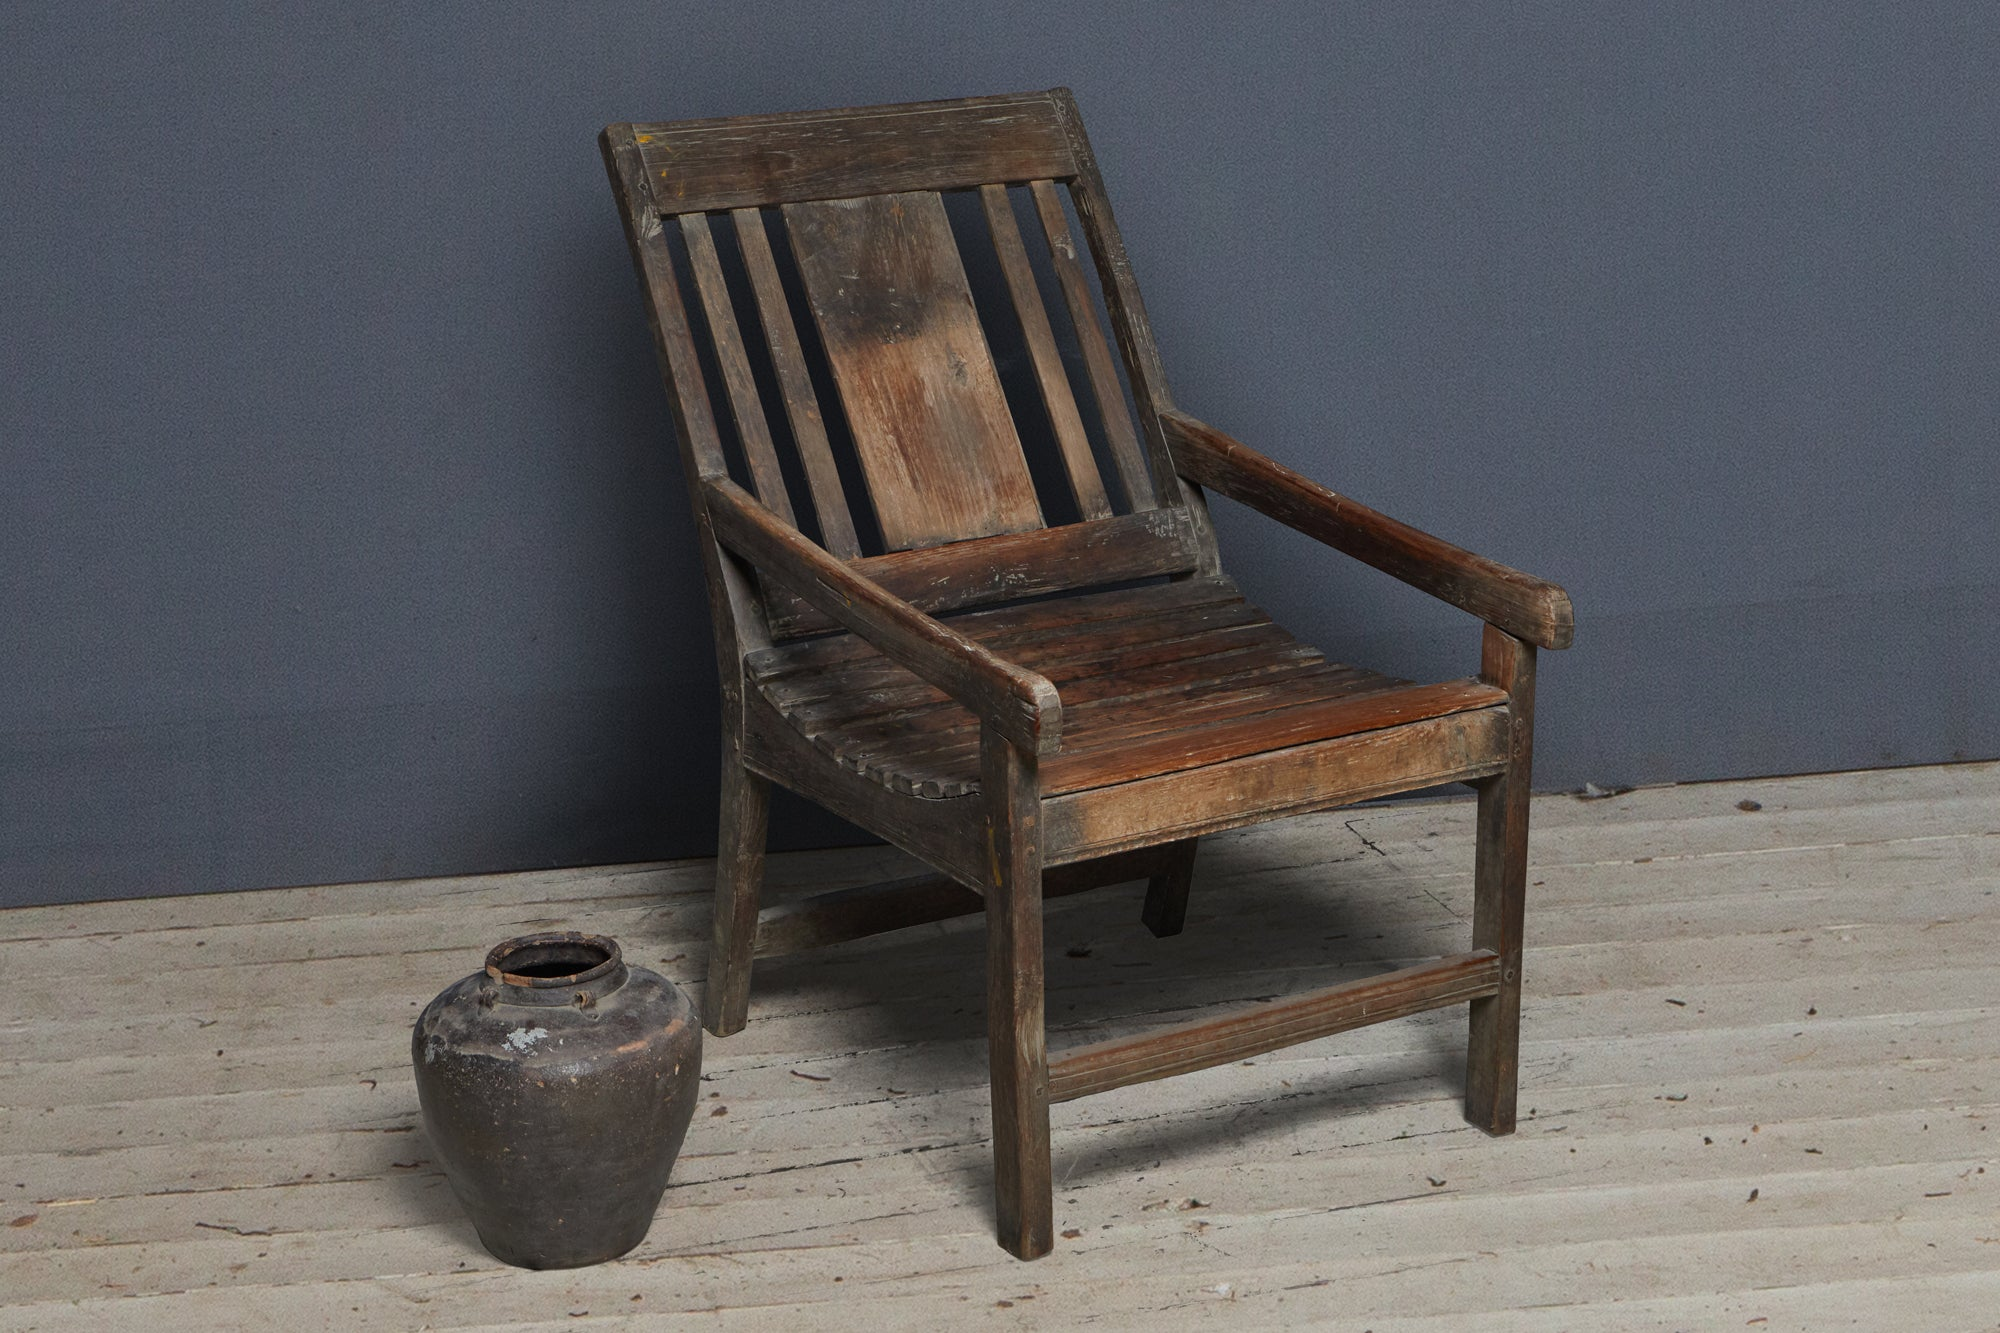 Large Dutch Colonial Teak Relaxing Chair with Slatted Seat